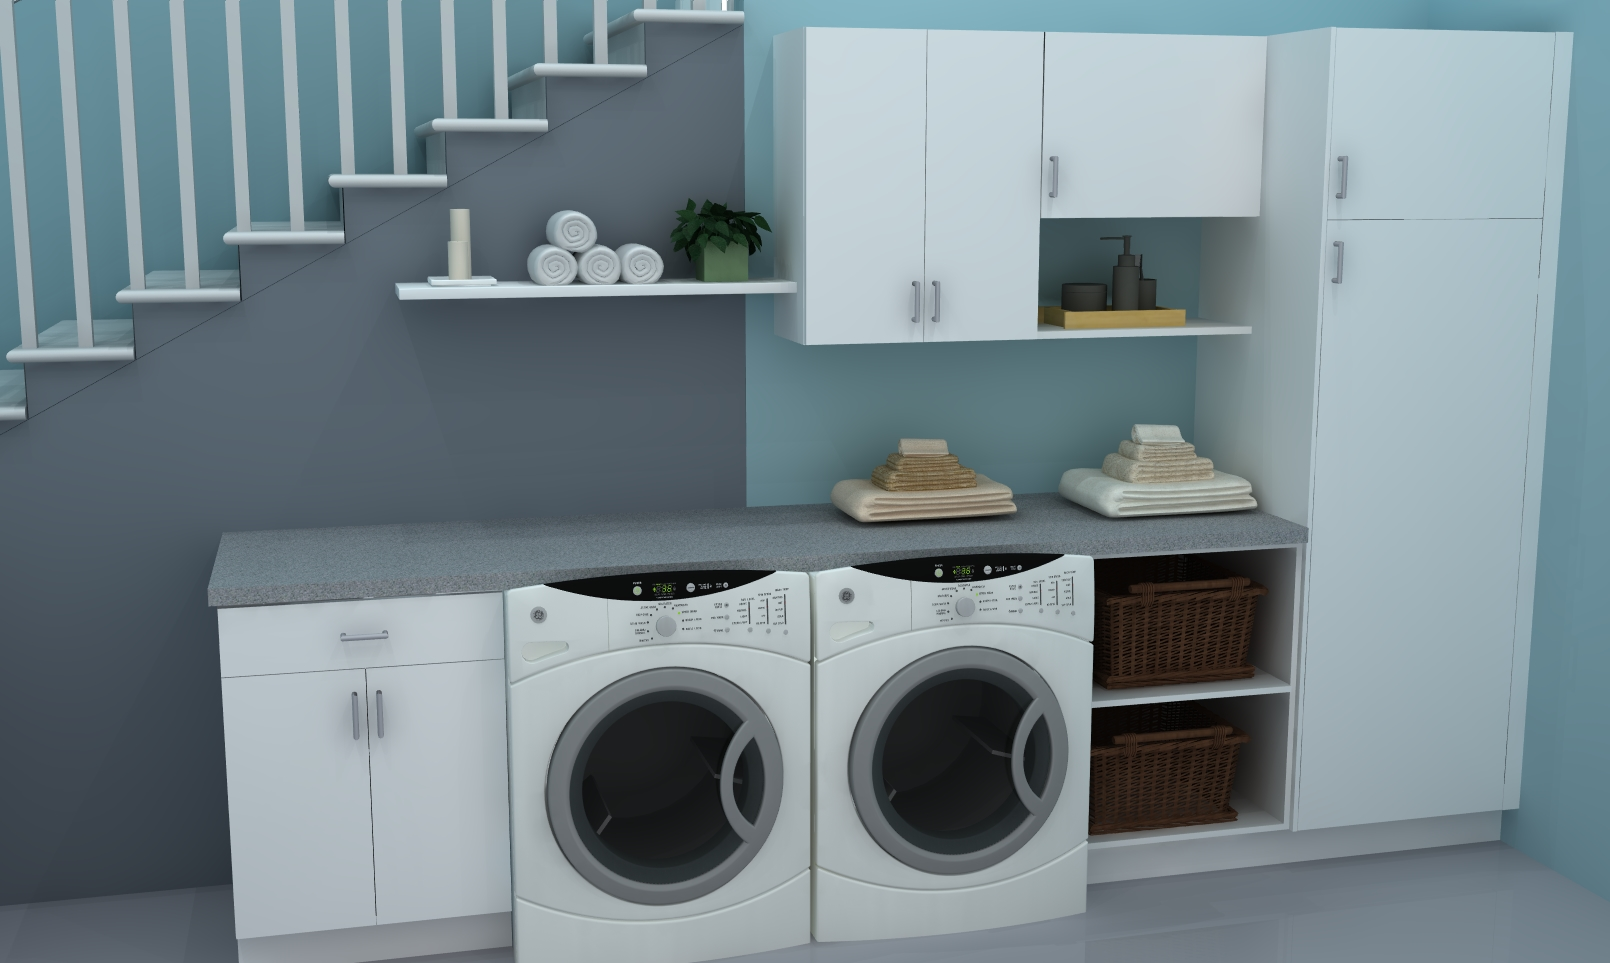 Useful spaces a practical ikea laundry room - Laundry ideas for small space decoration ...